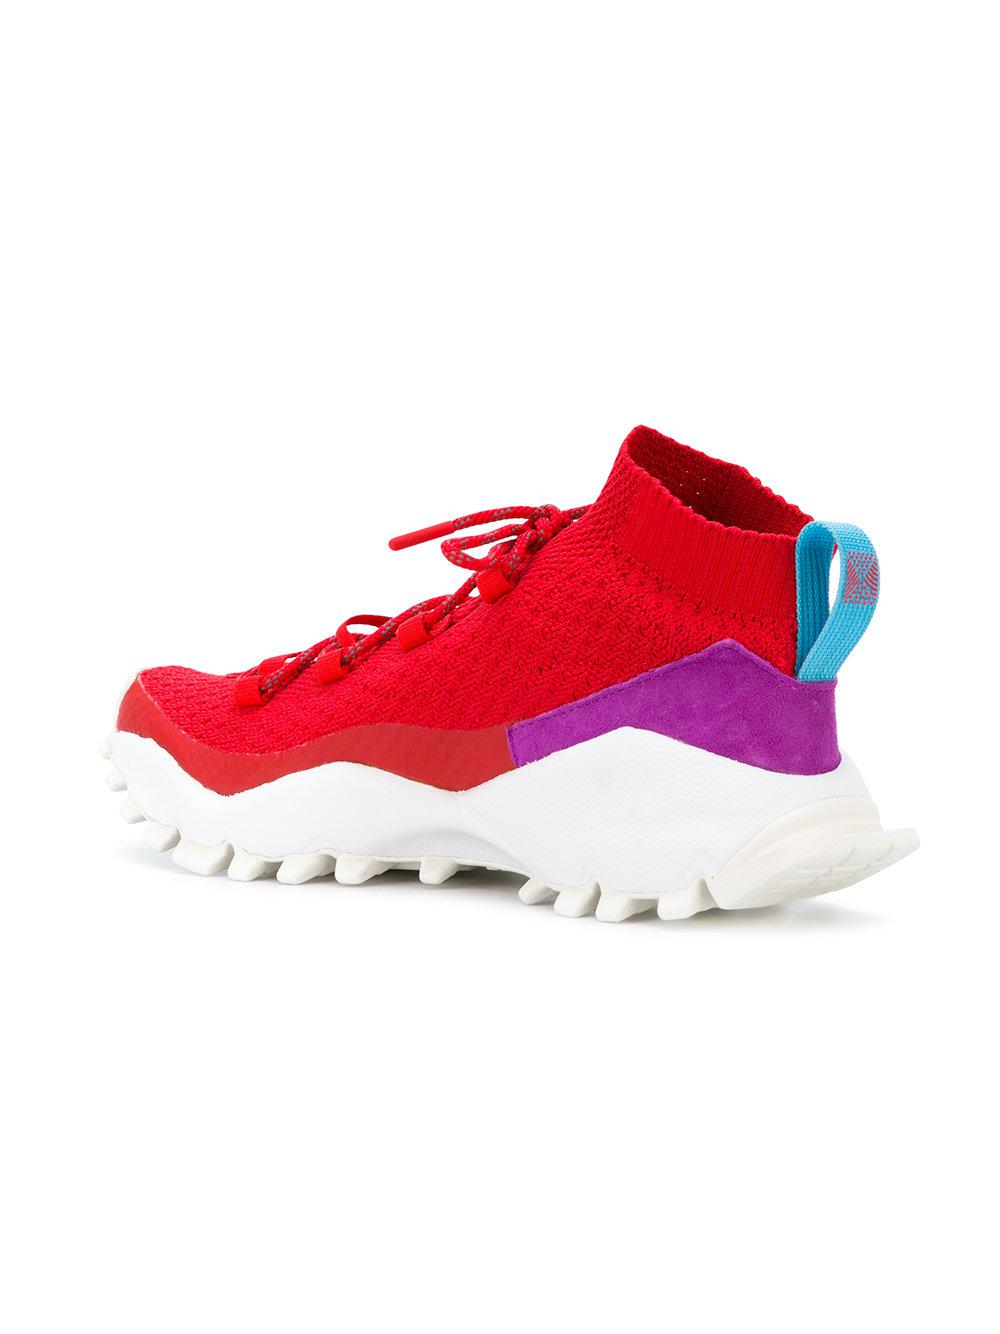 dacb30aa1b0e Lyst - adidas Seeulater Winter Primeknit Sneakers in Red for Men